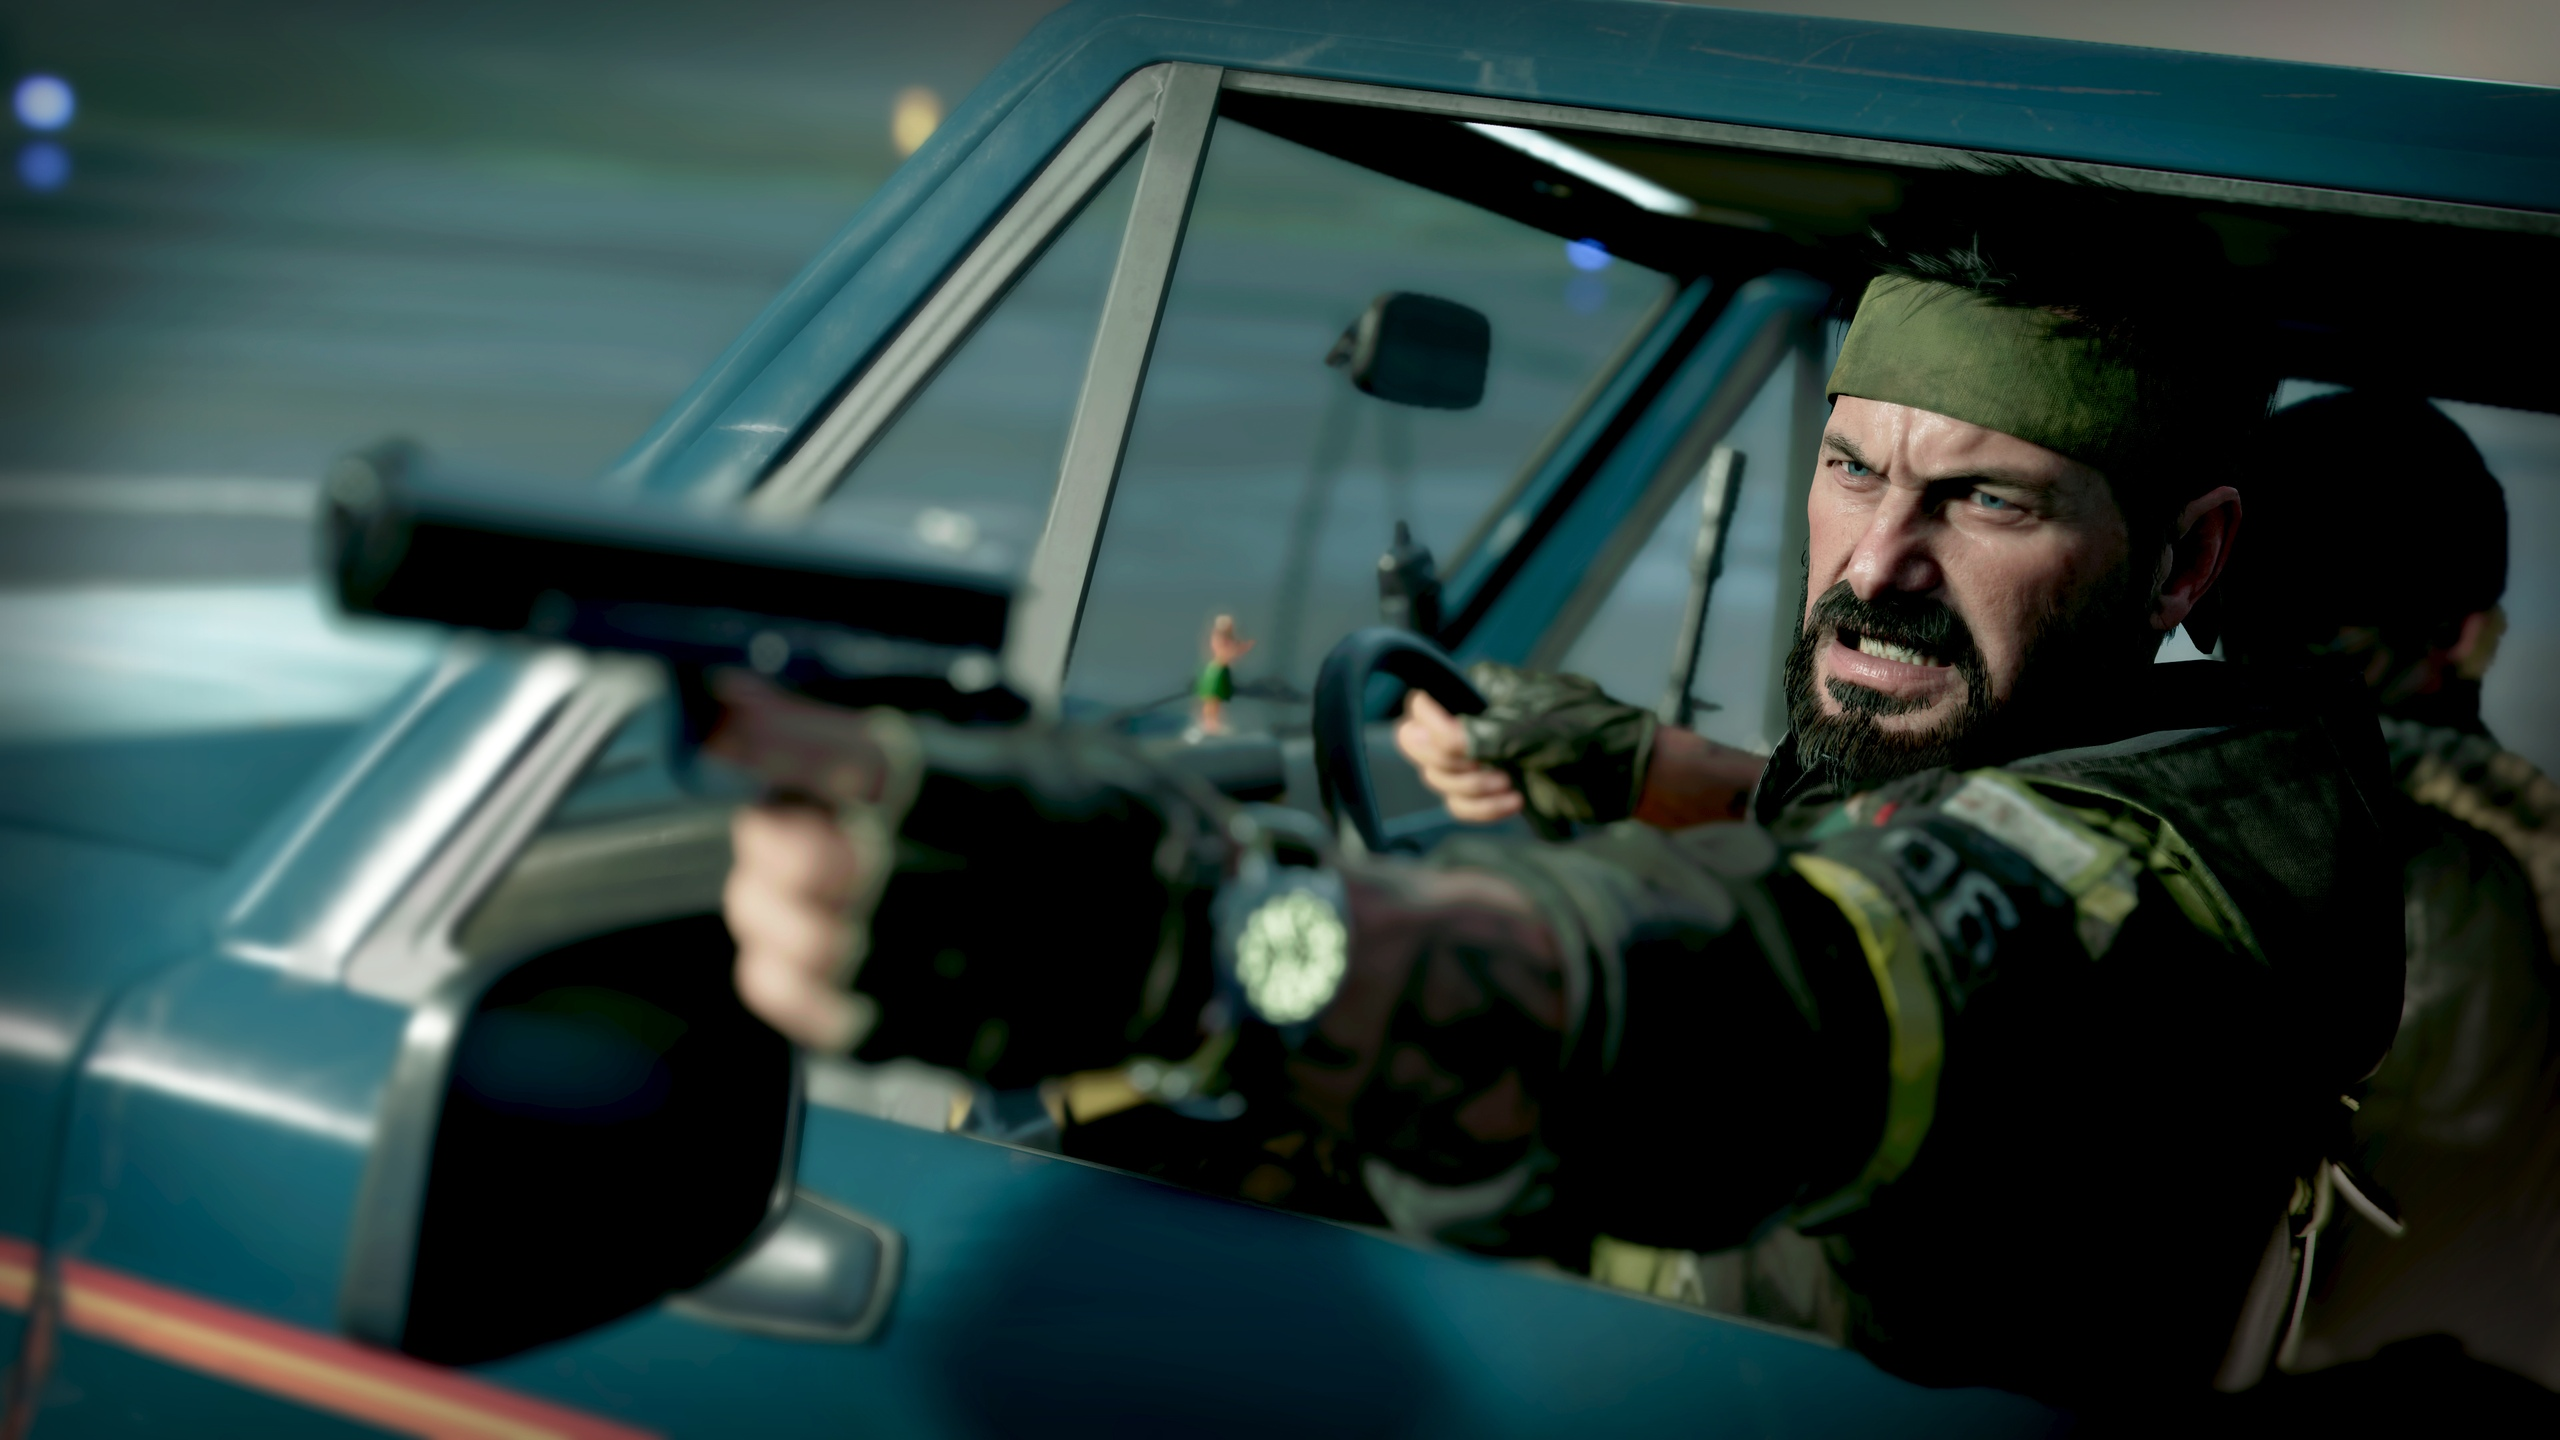 Скриншоты Call of Duty: Black Ops Cold War, релиз состоится 13 ноября